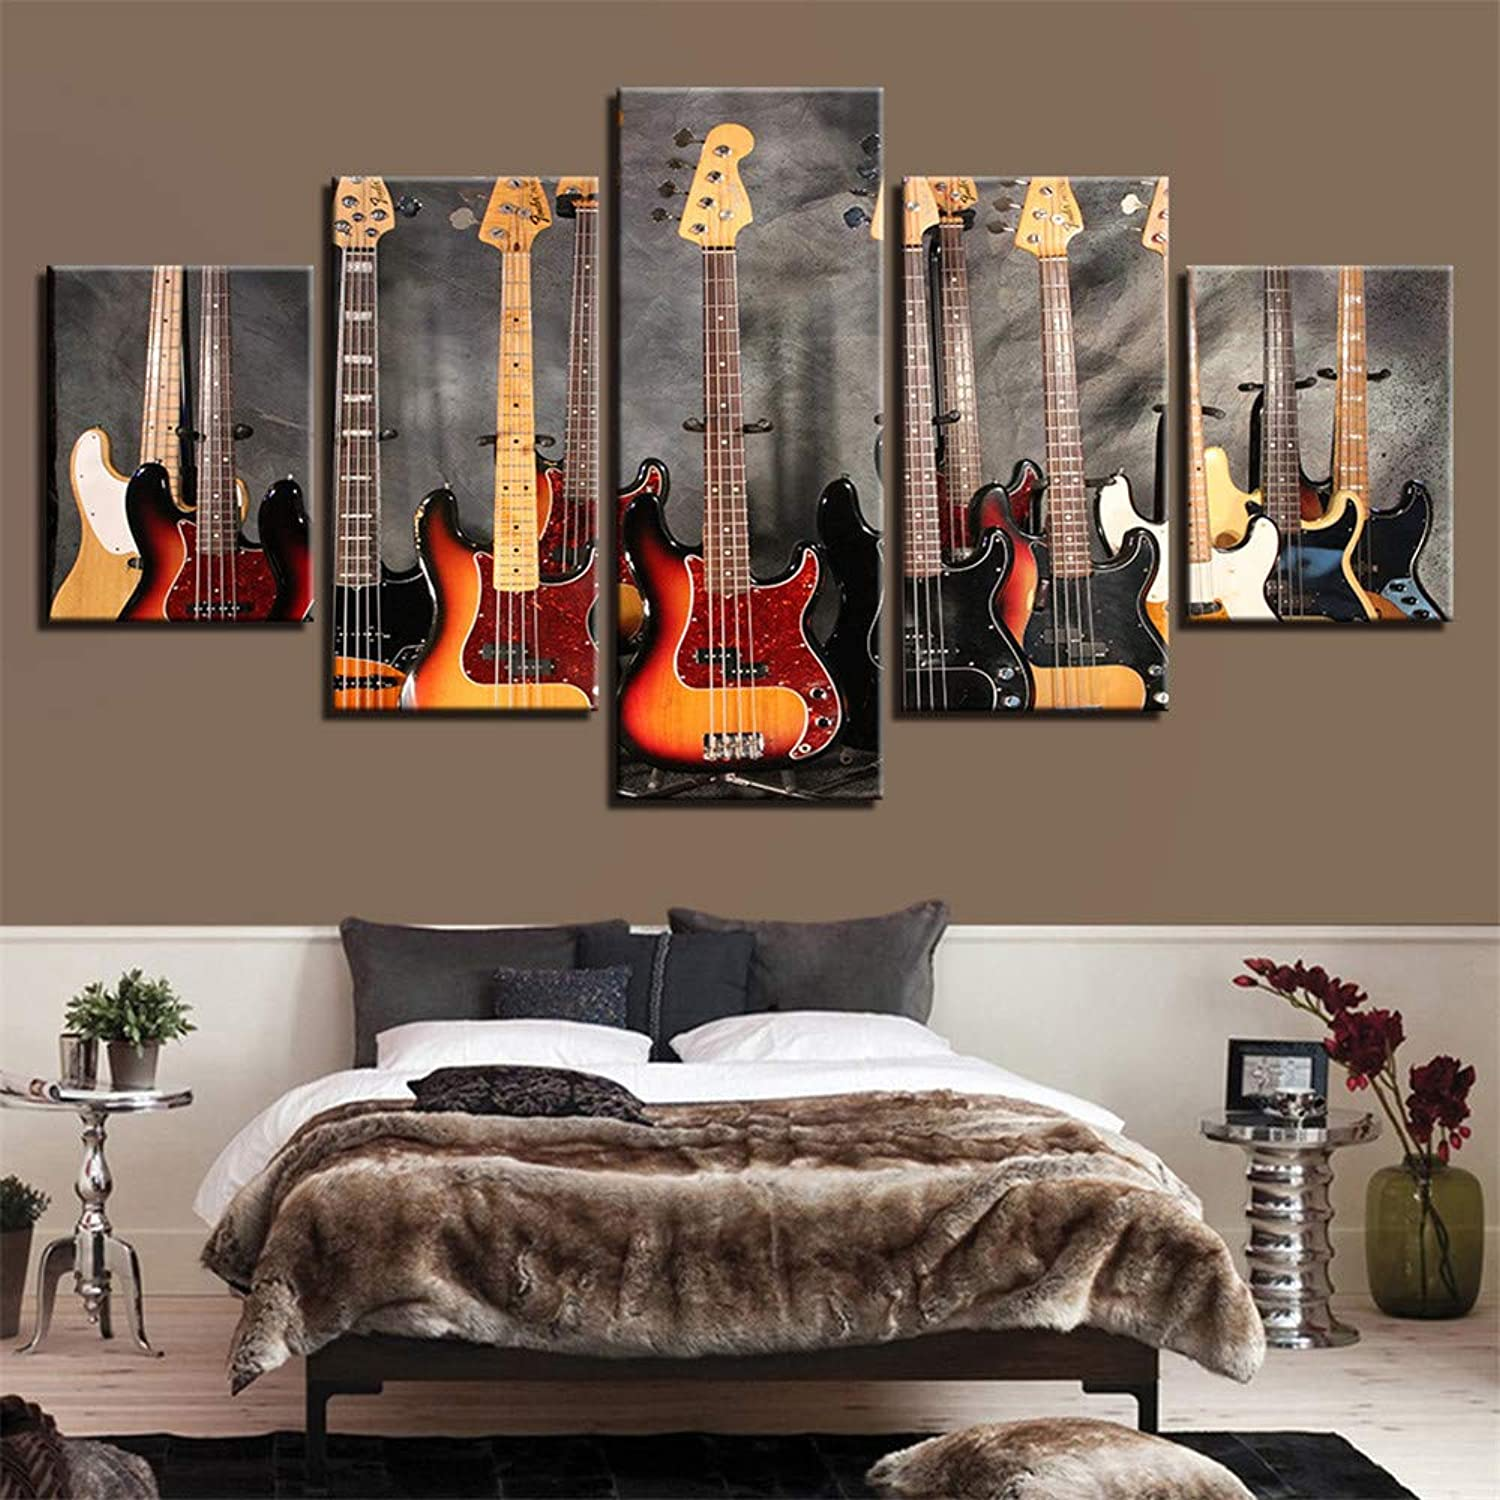 Loiazh  Image Printed On Non Woven Canvas  Wall Art Print Picture  Photo  5 Pieces  Frameless  Guitar 55x22 45x20x2 35x20x2(cm)